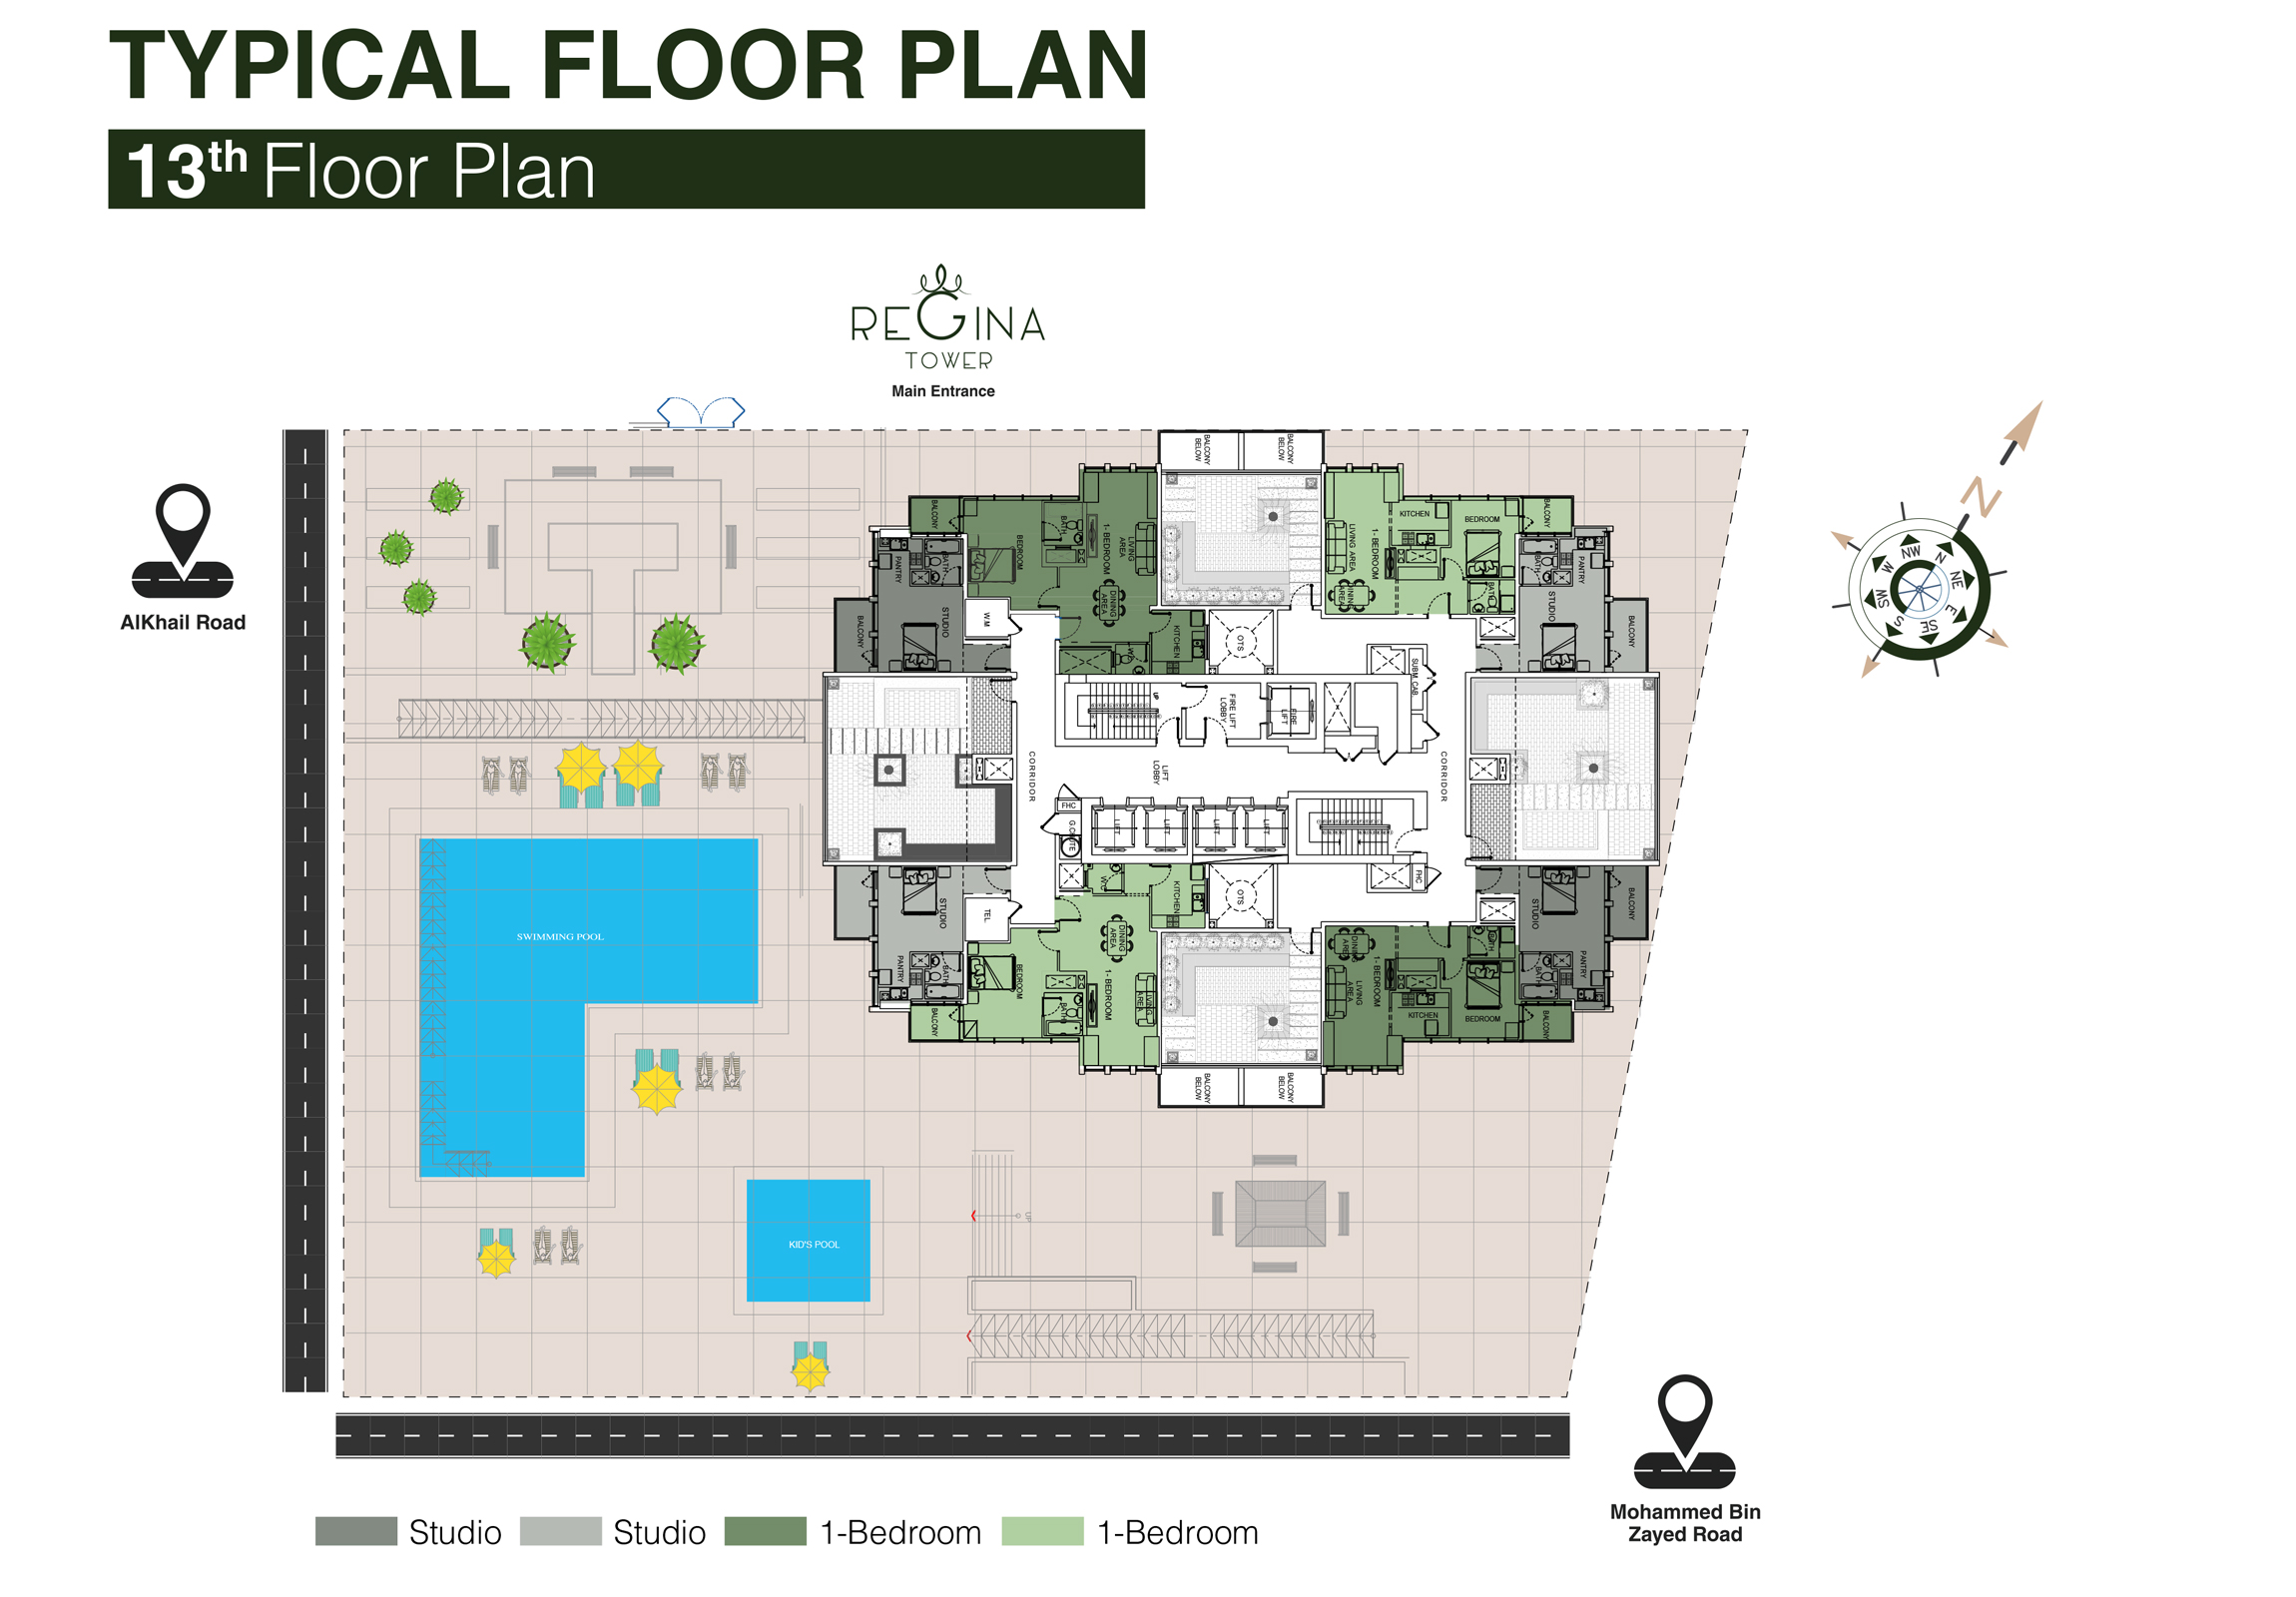 Typical Floor Plan 13th Floor